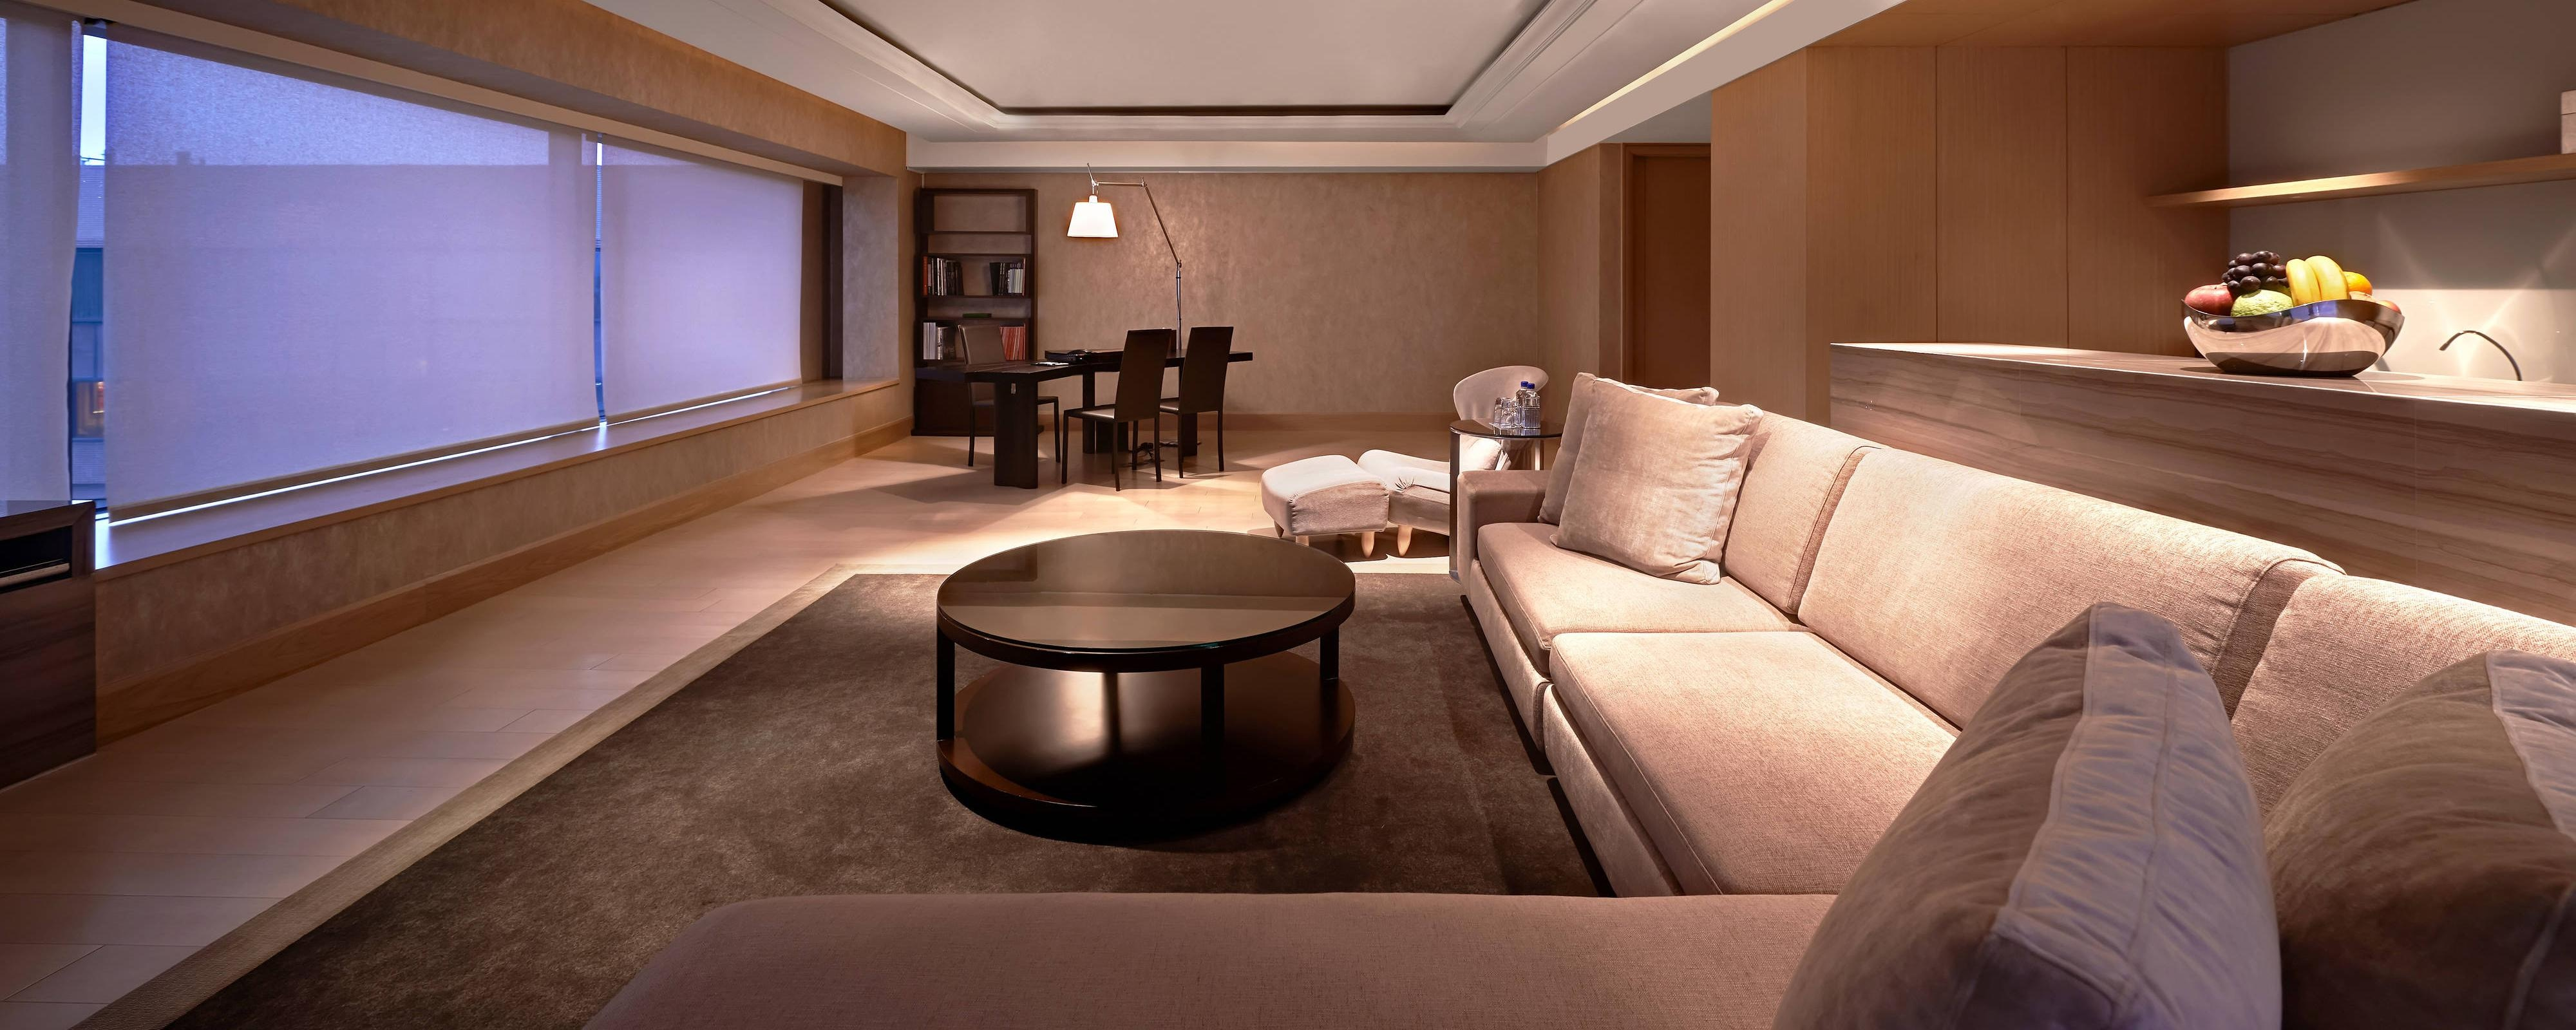 Presidential Suite - Family Room